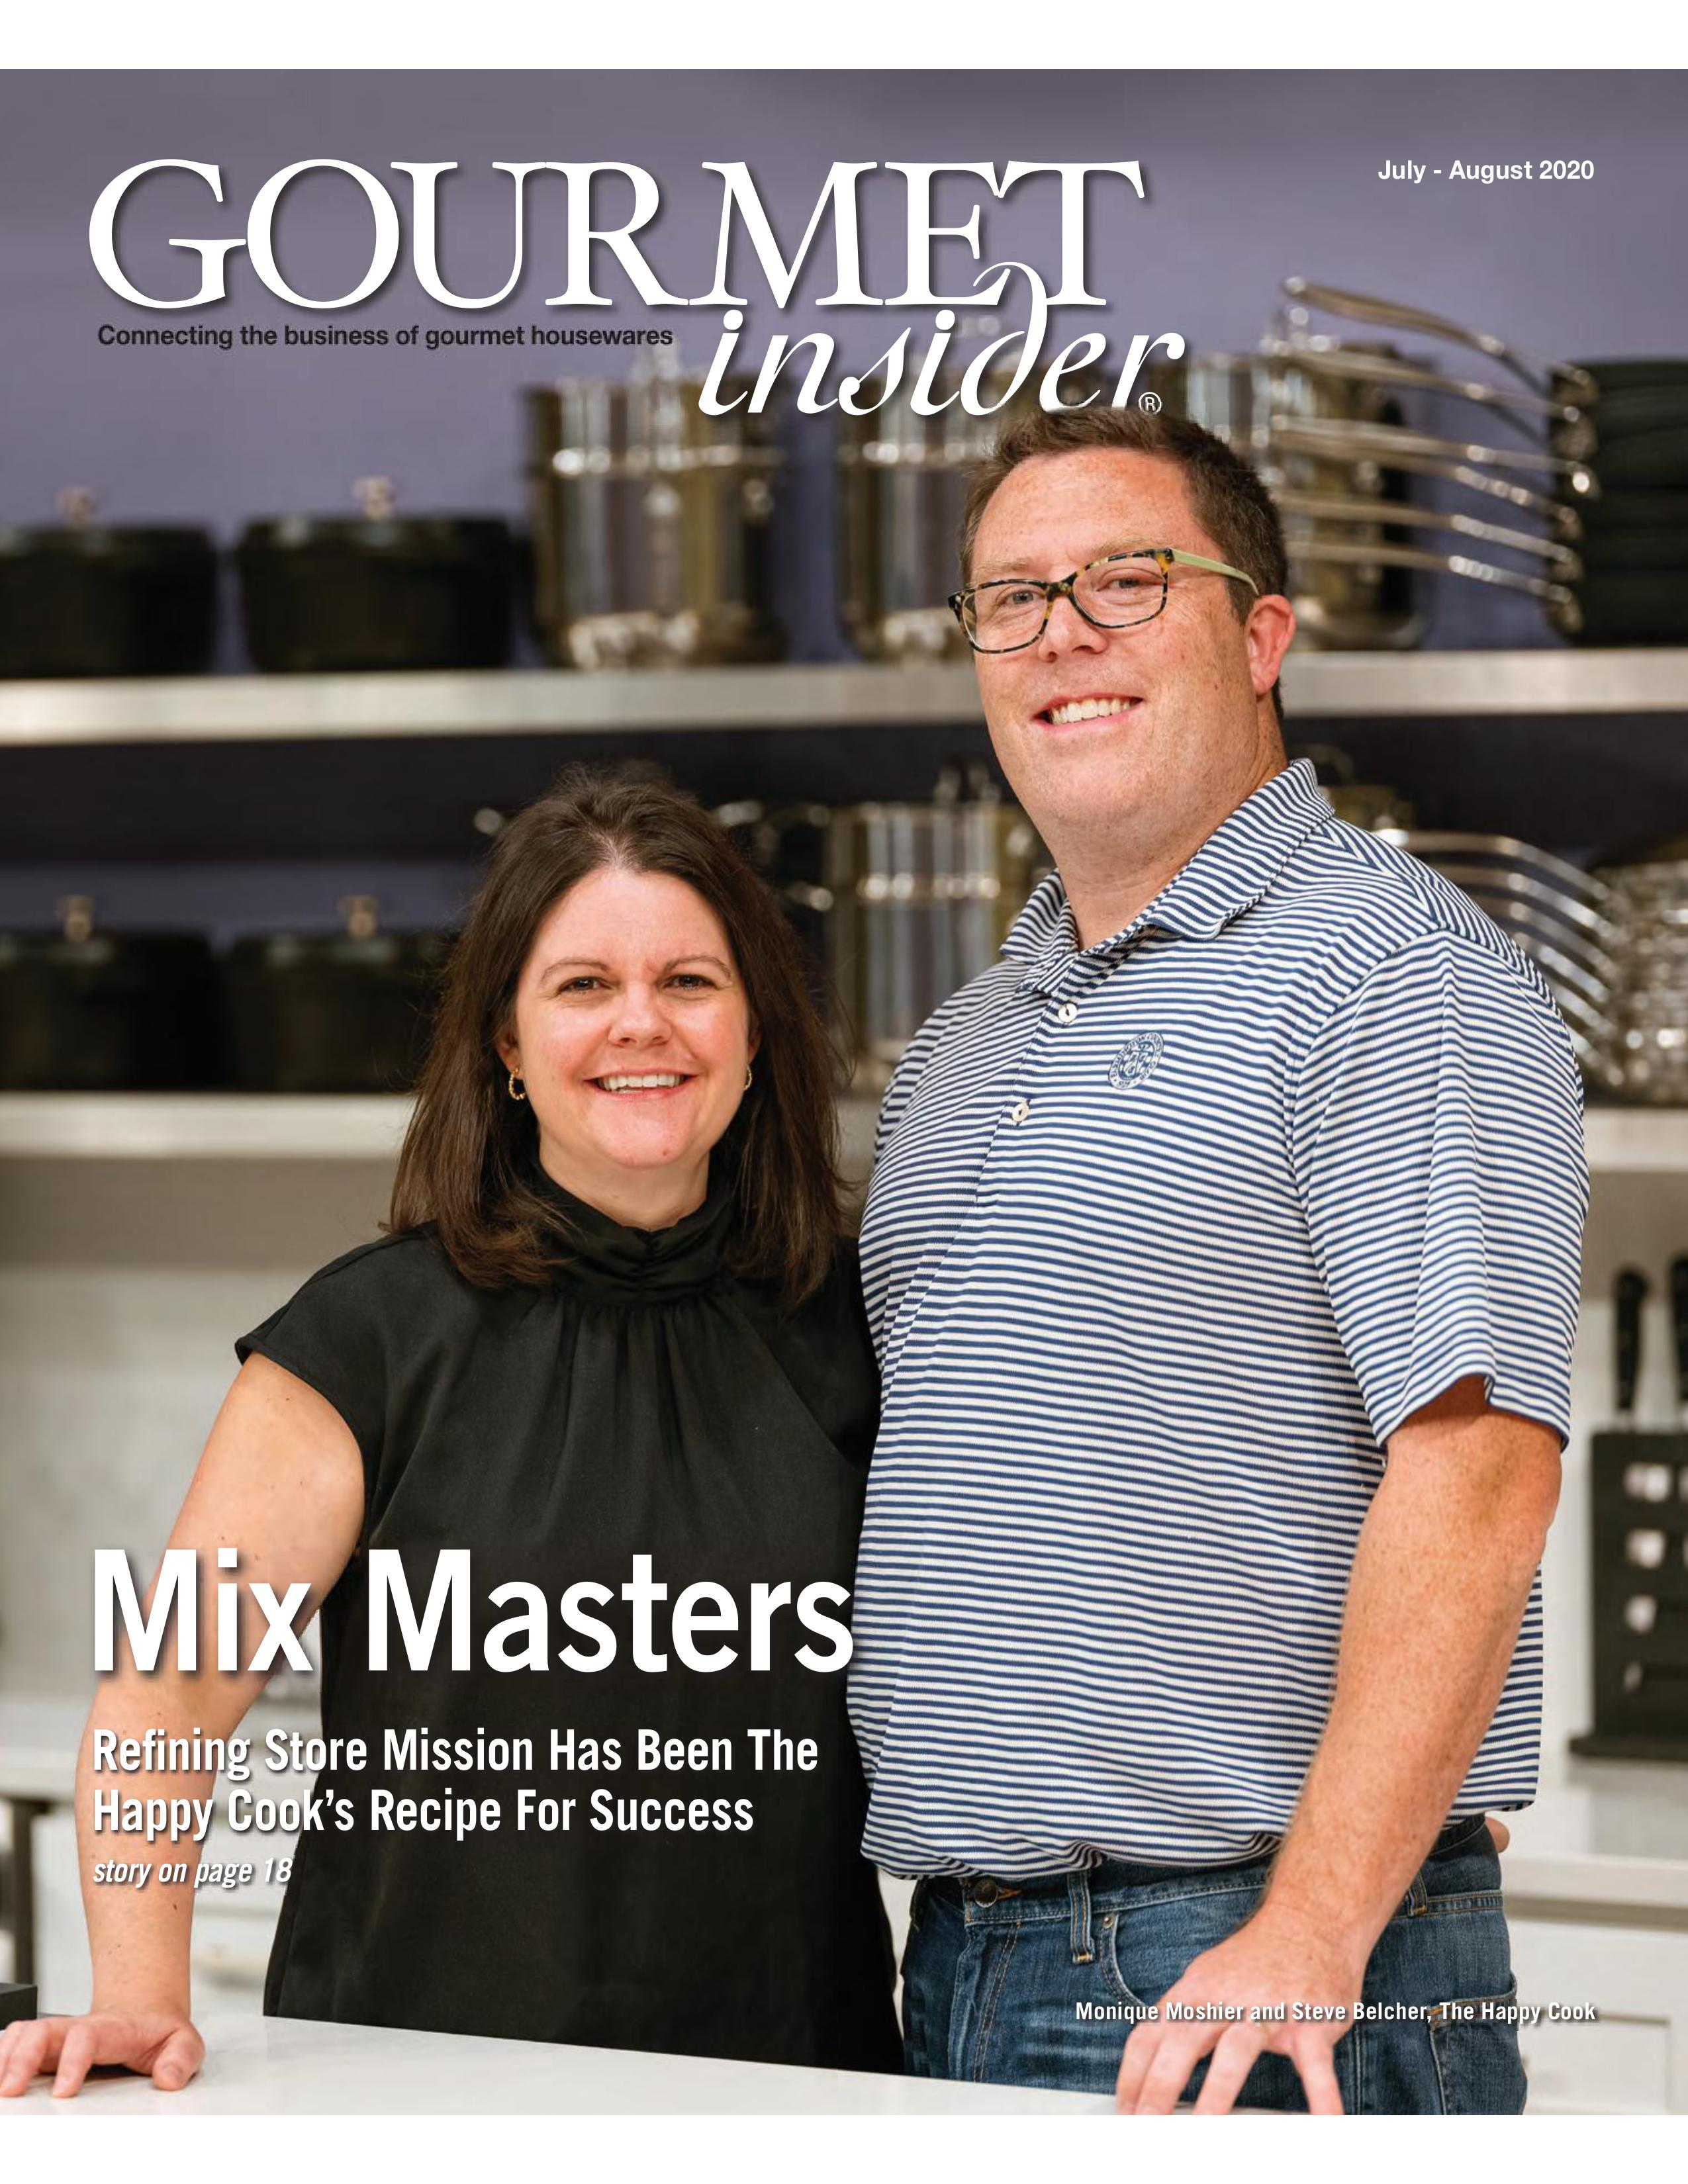 The Happy Cook Named All-Star Retailer for 2020 by Gourmet Insider Magazine